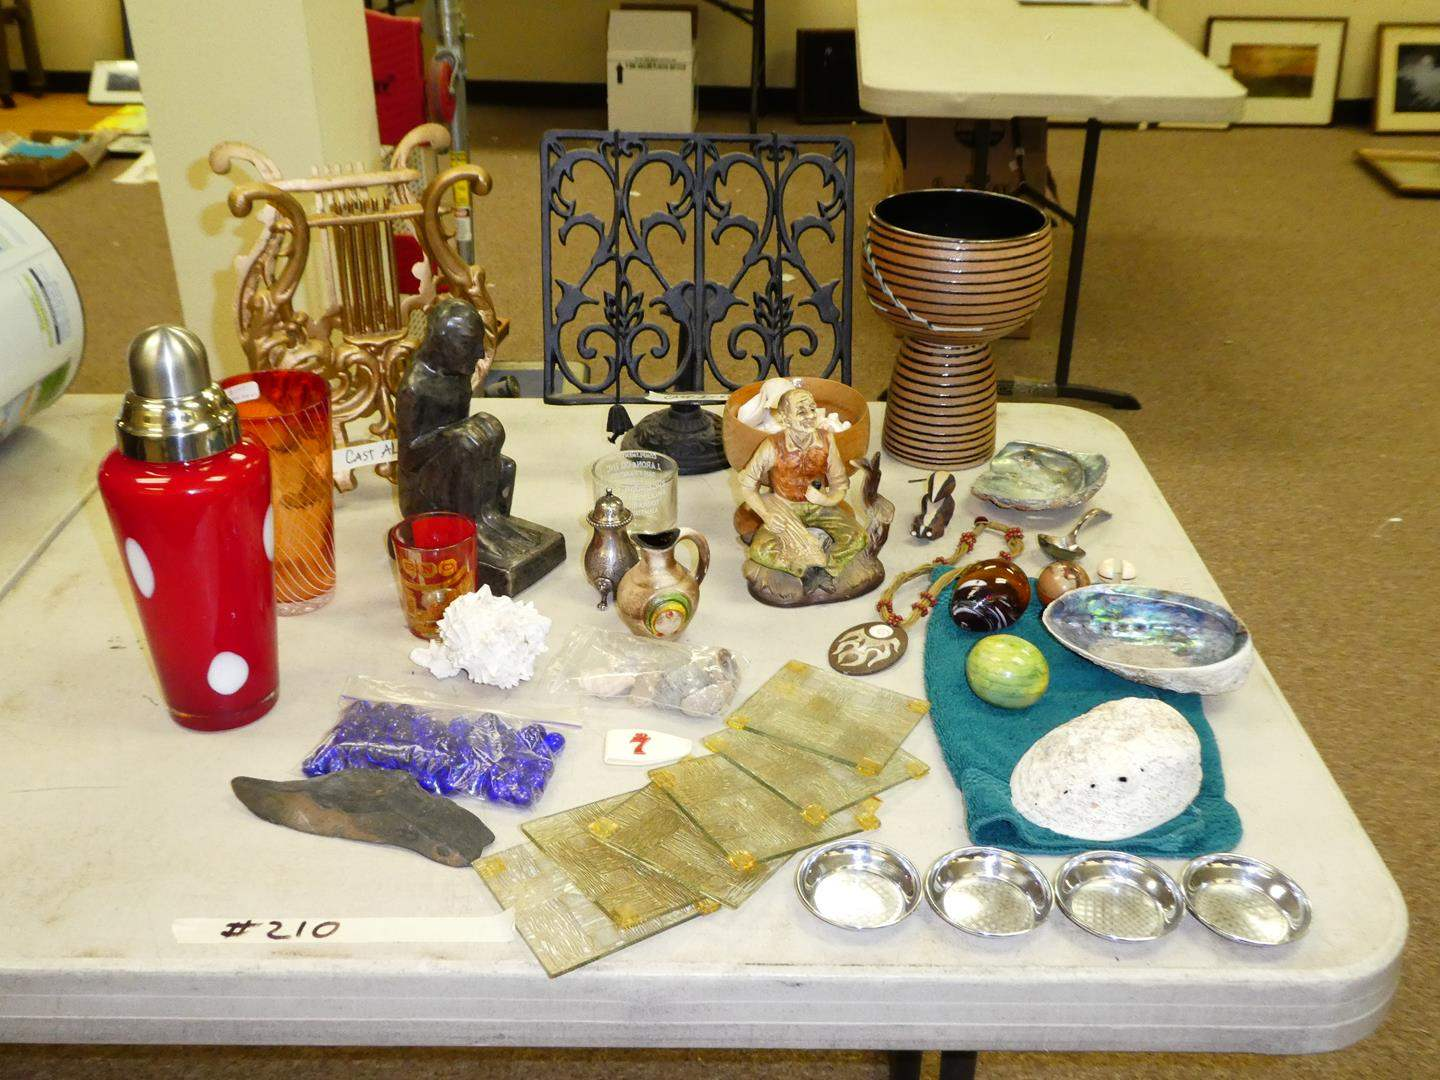 Lot # 210 - Vintage Glassware, Cast Metal Music Holders & Pottery (main image)